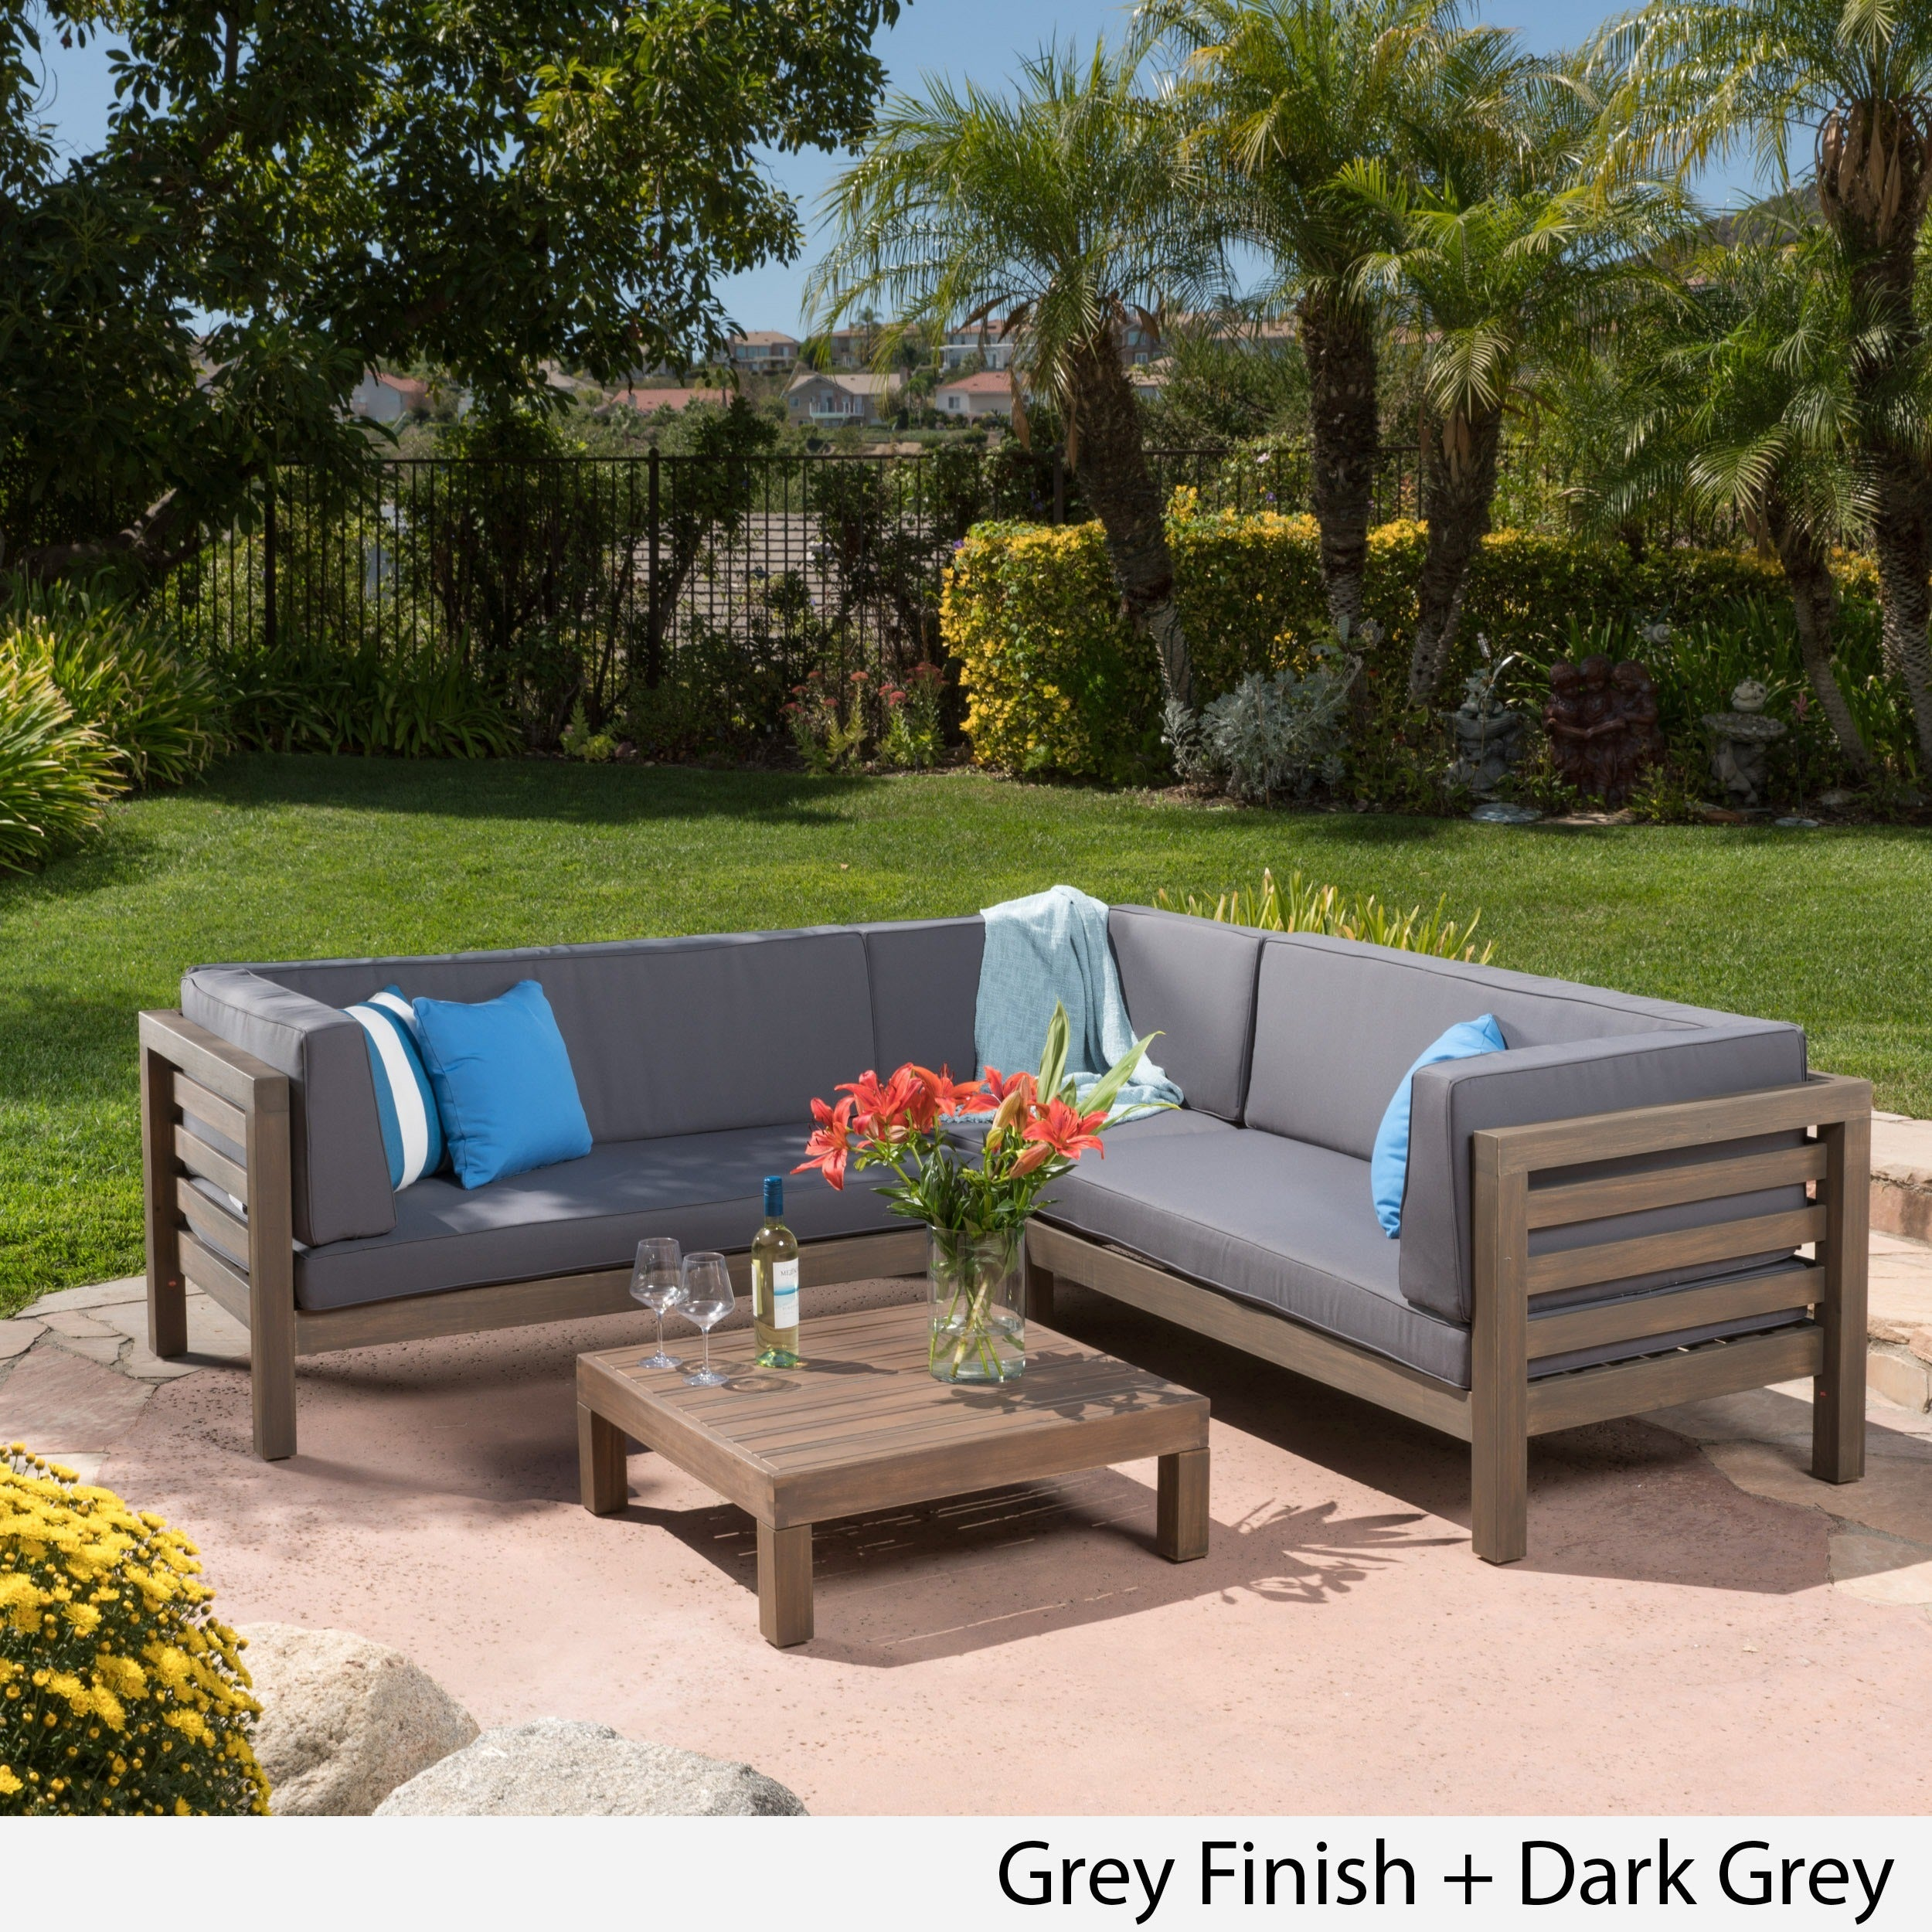 Outdoor Sectional Sofa Images: Oana Outdoor 4-Piece Acacia Wood Sectional Sofa Set With